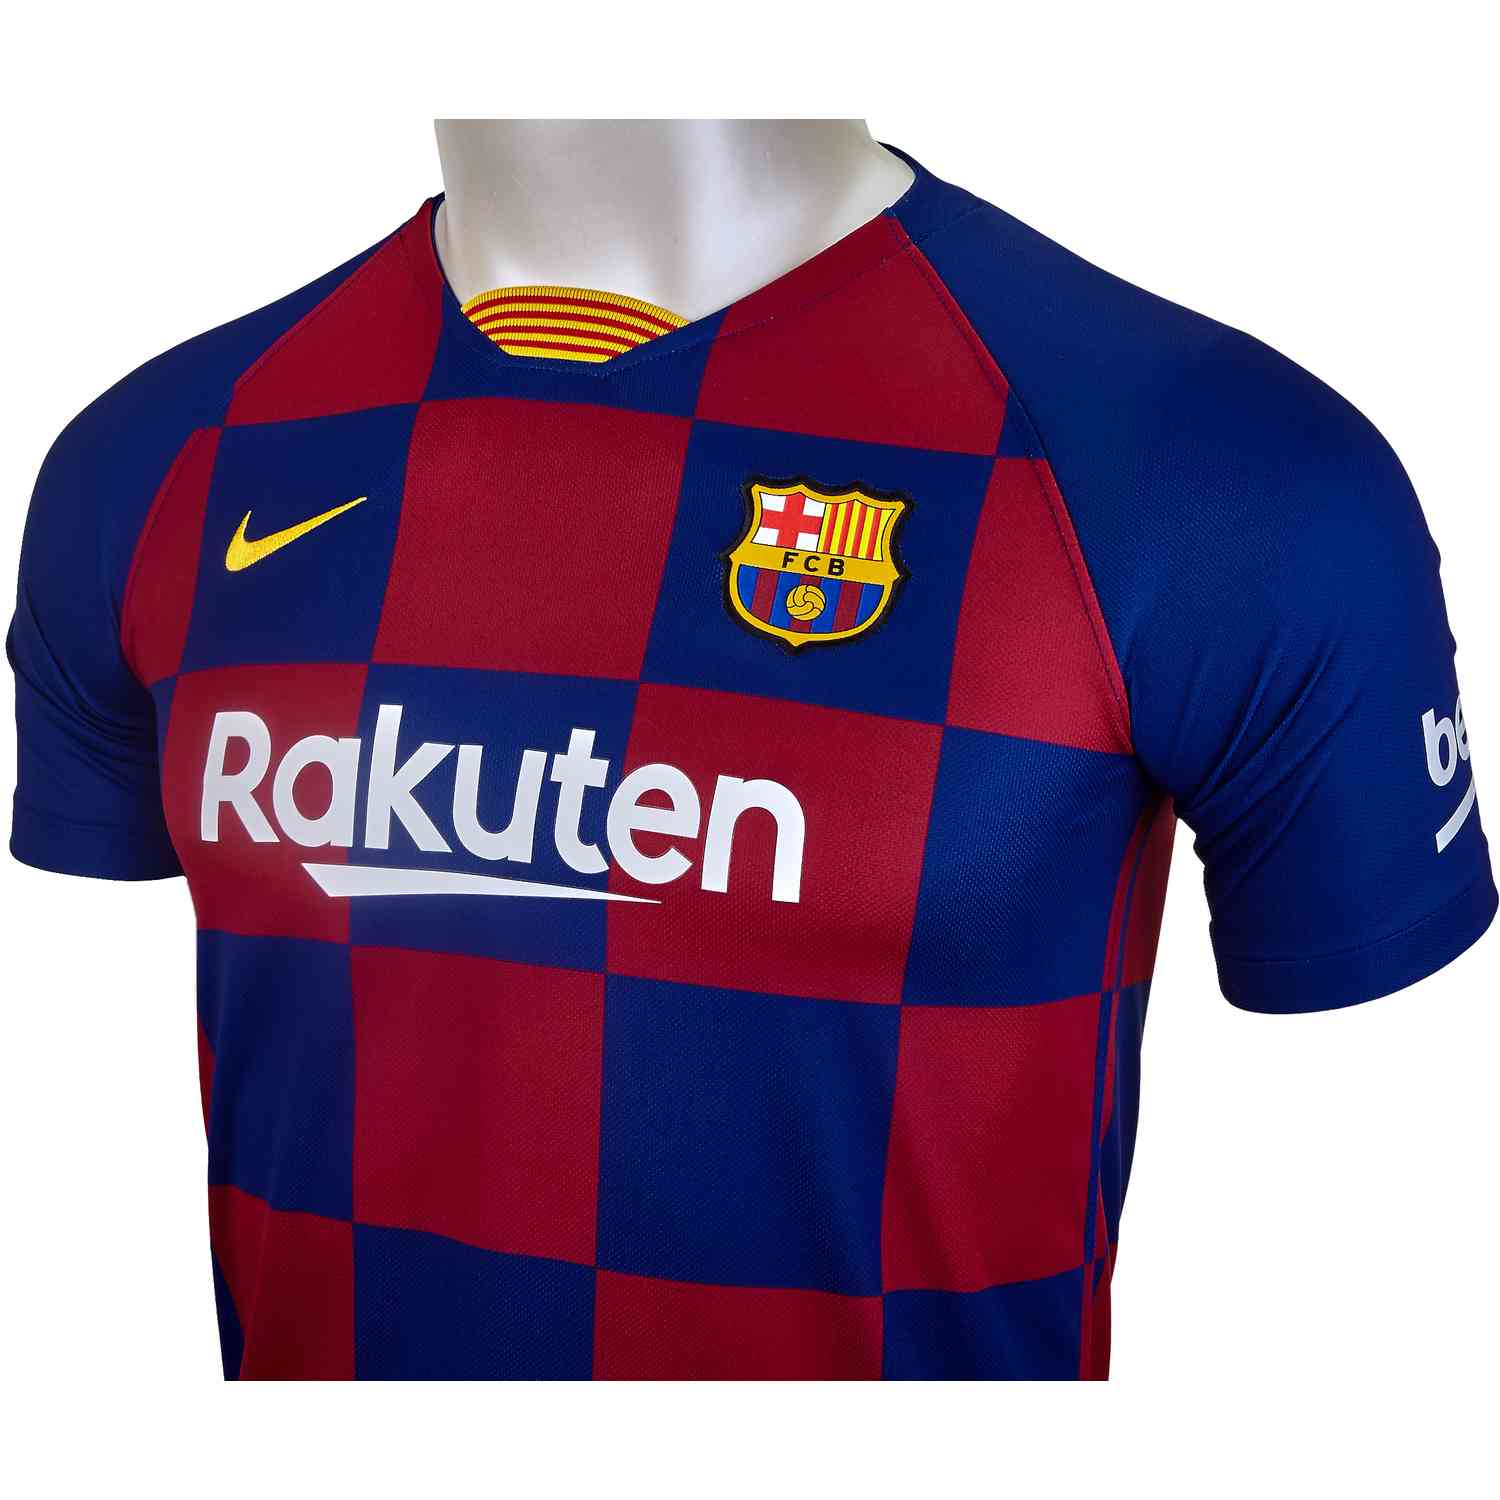 new product 37902 0a3e7 2019/20 Kids Nike Lionel Messi Barcelona Home Jersey - SoccerPro